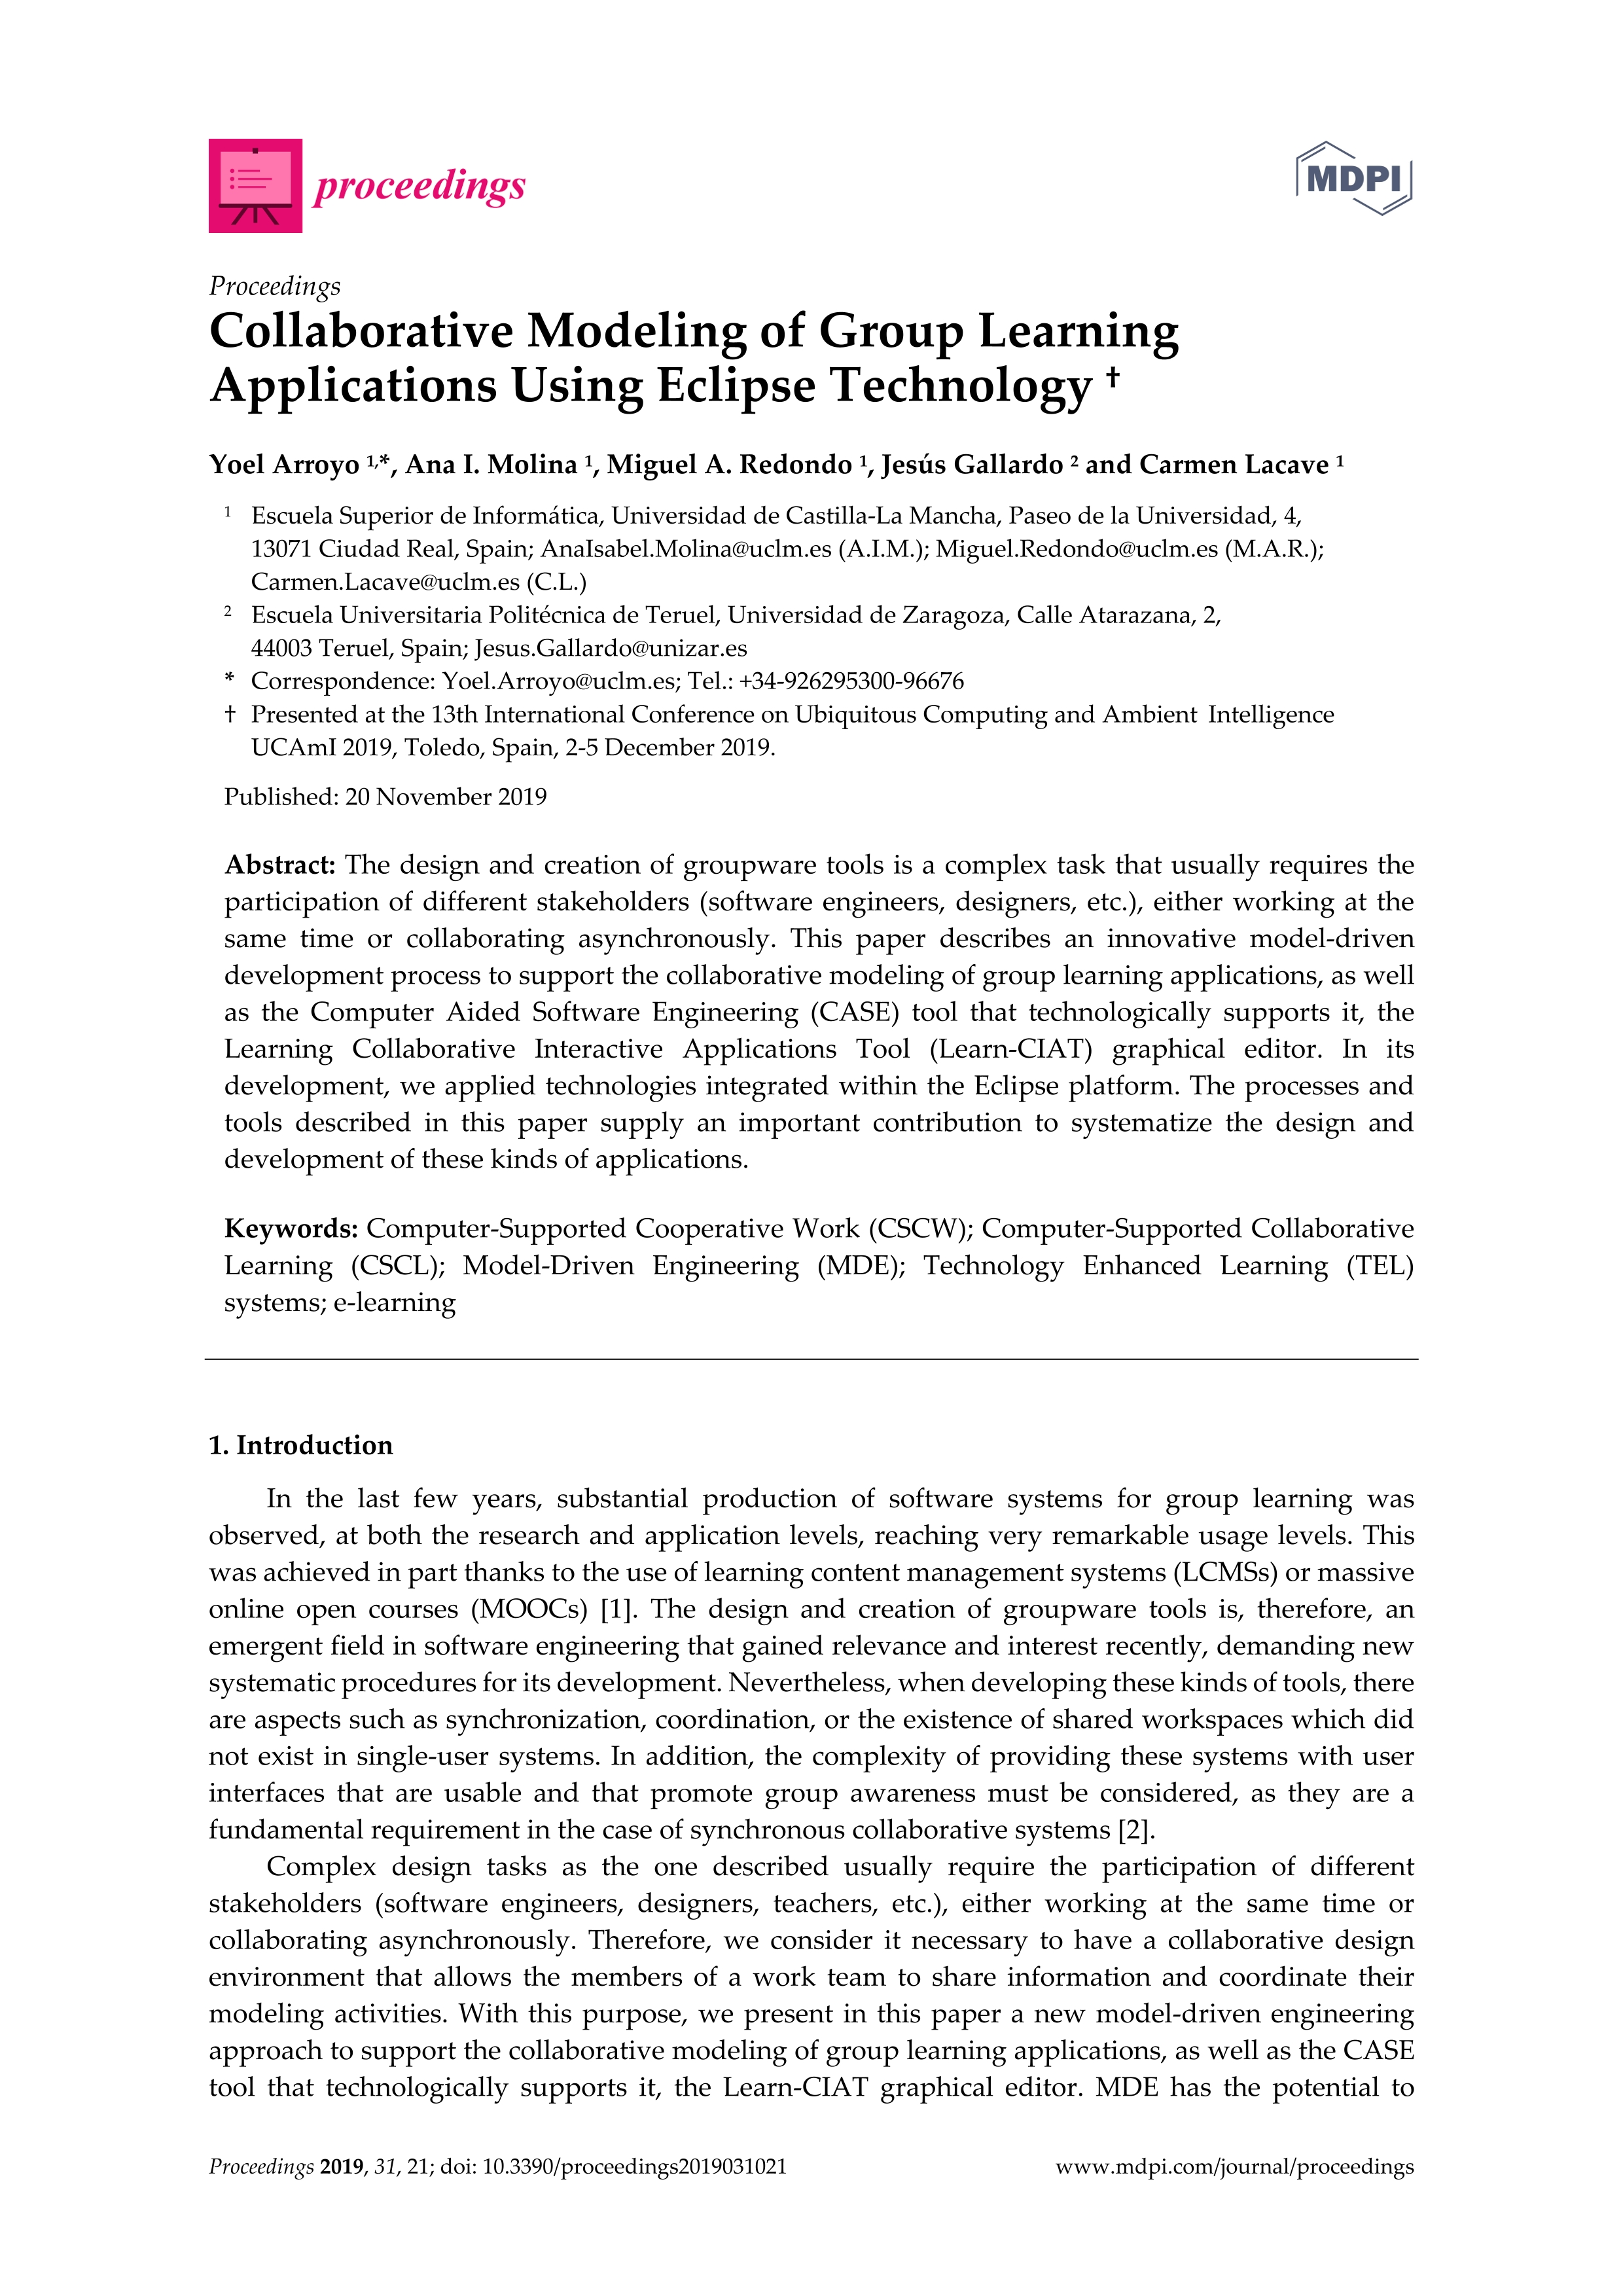 Collaborative Modeling of Group Learning Applications Using Eclipse Technology